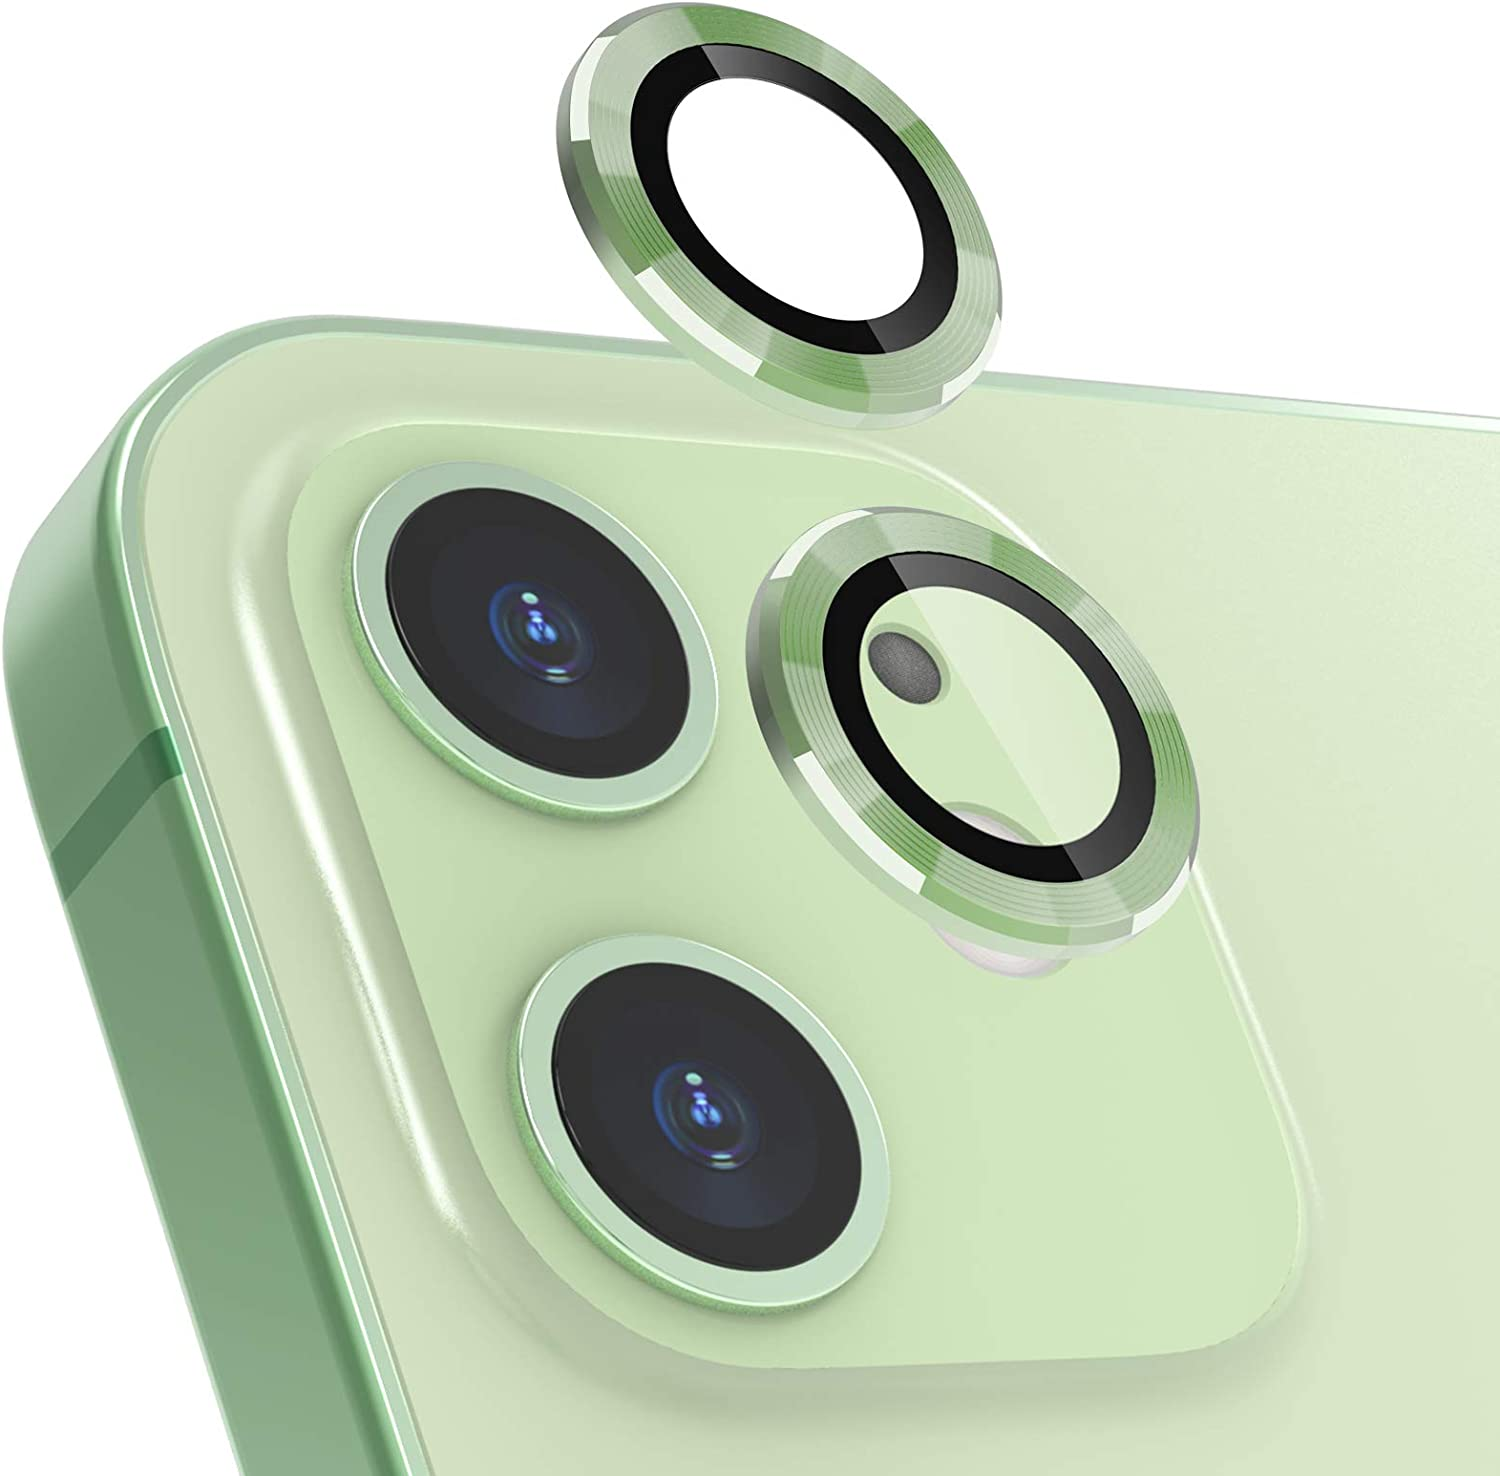 imluckies Camera Lens Protector for iPhone 12/iPhone 12 Mini/iPhone 11, [Anti-Scratch] Premium Tempered Glass Film Aluminum Alloy Lens Ring Cover, Light Green (2 Pack)